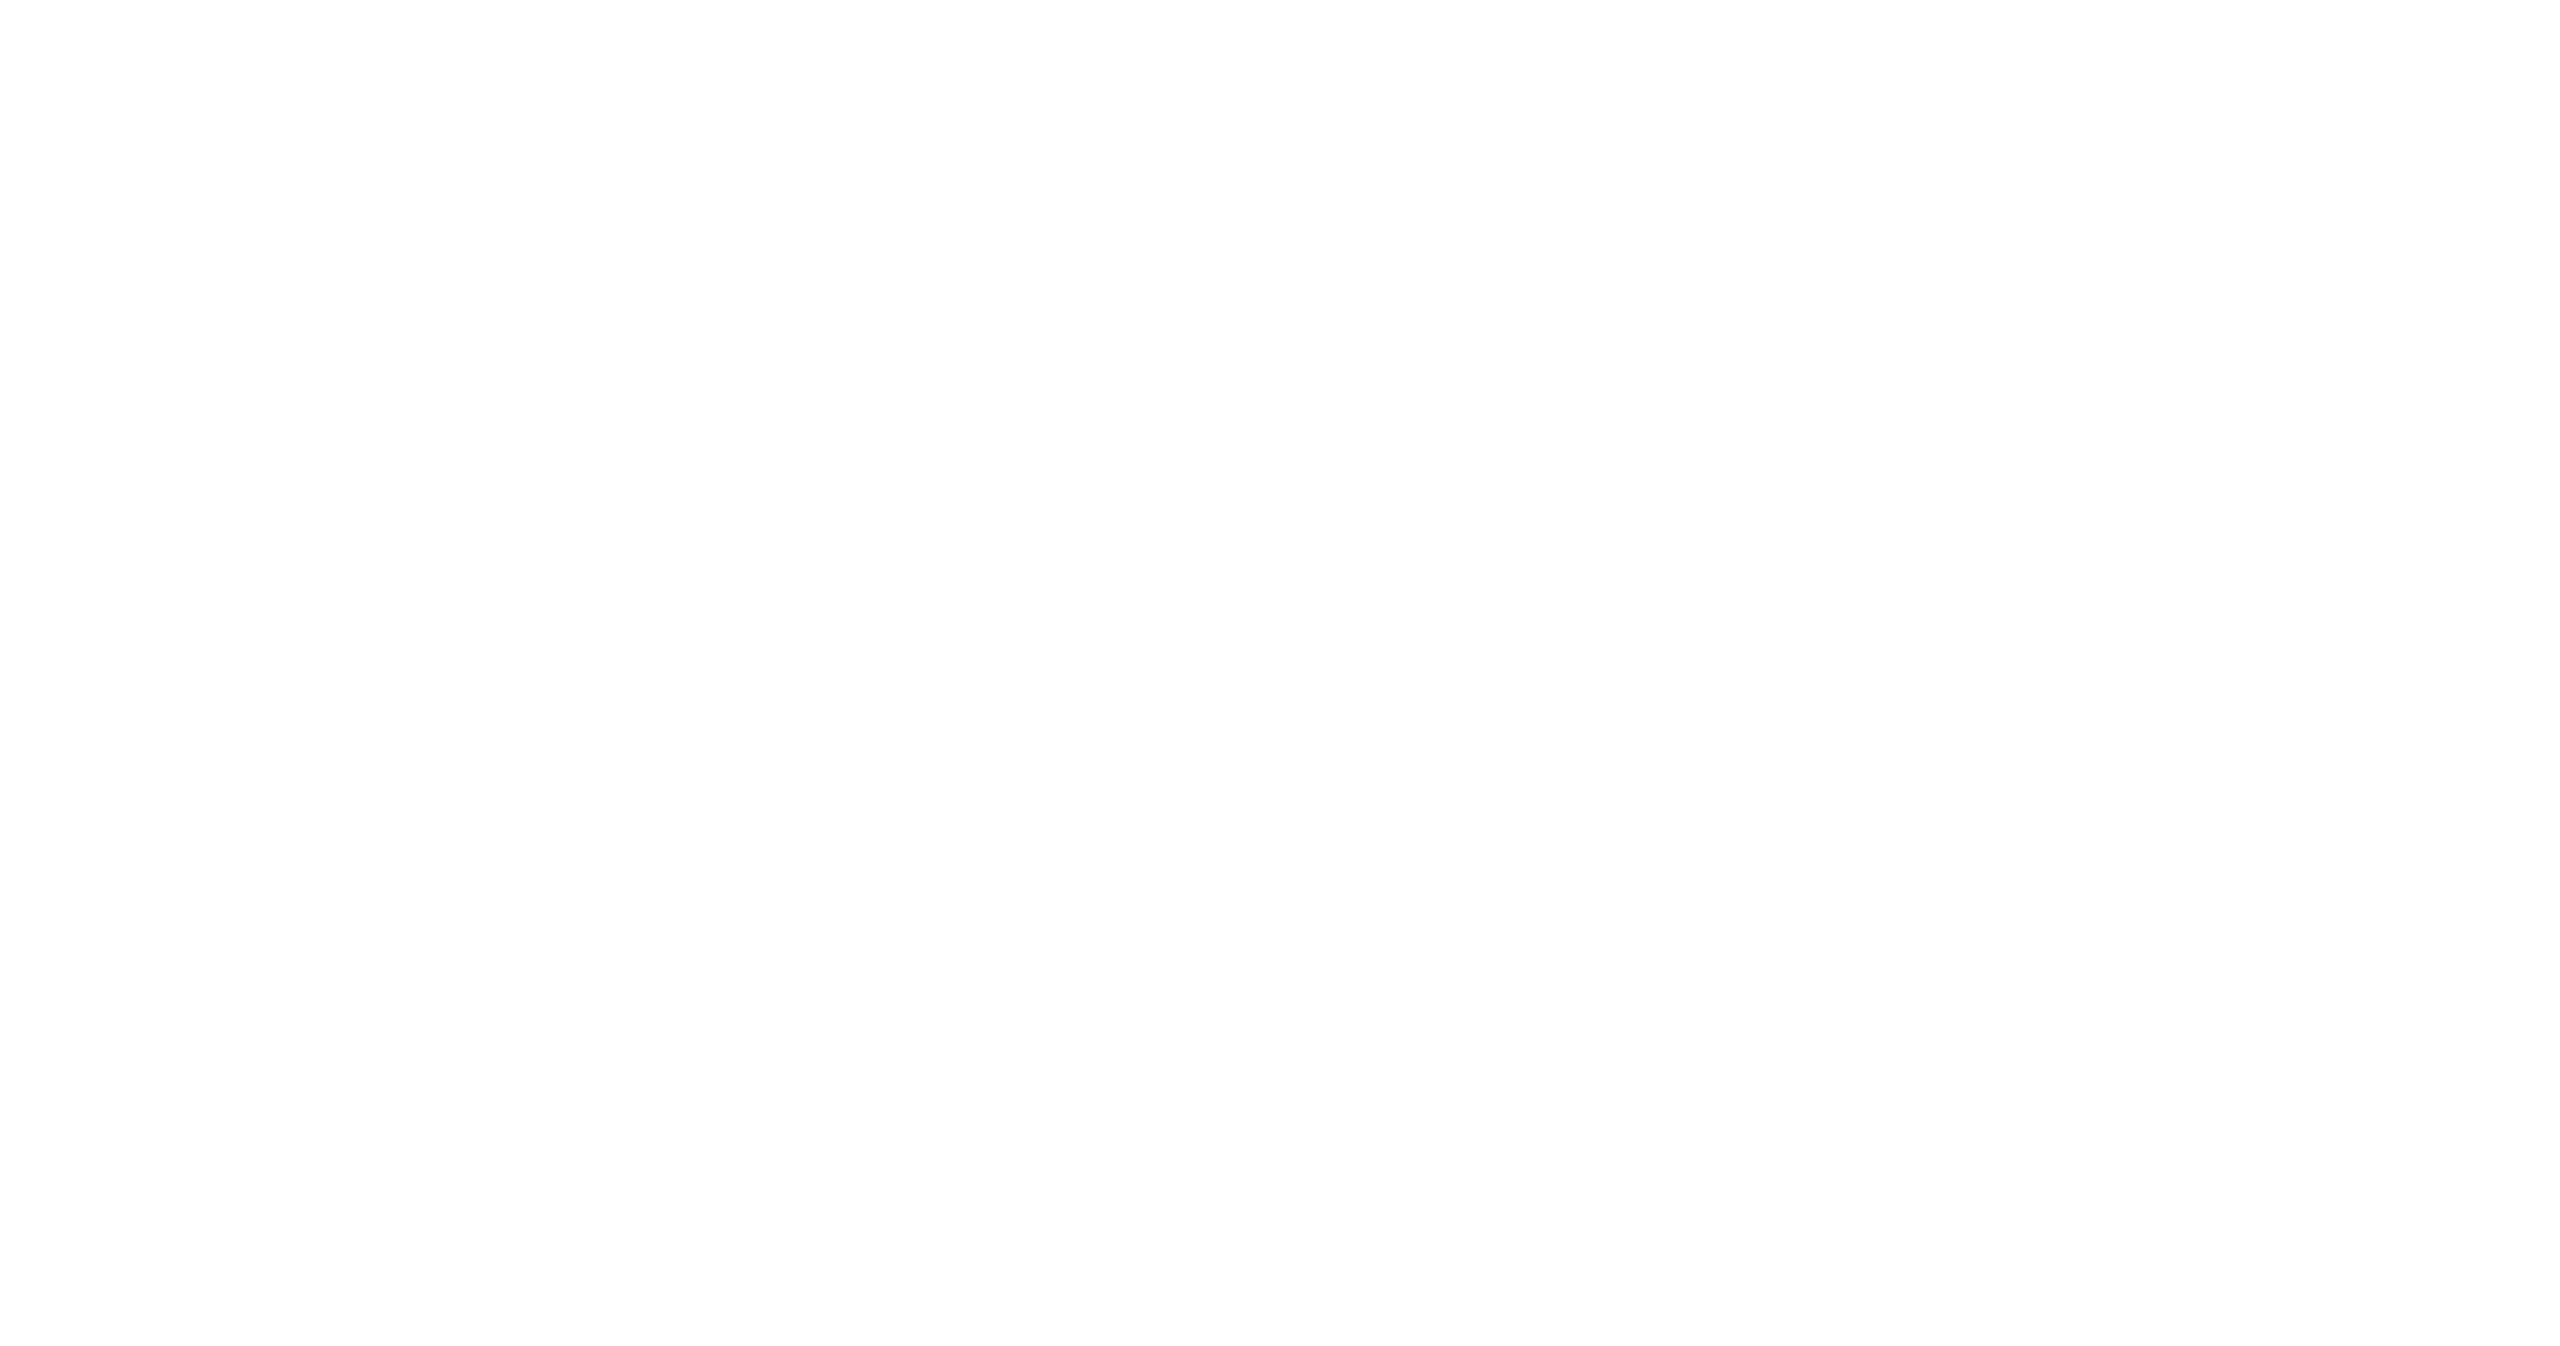 Kagiso Resources